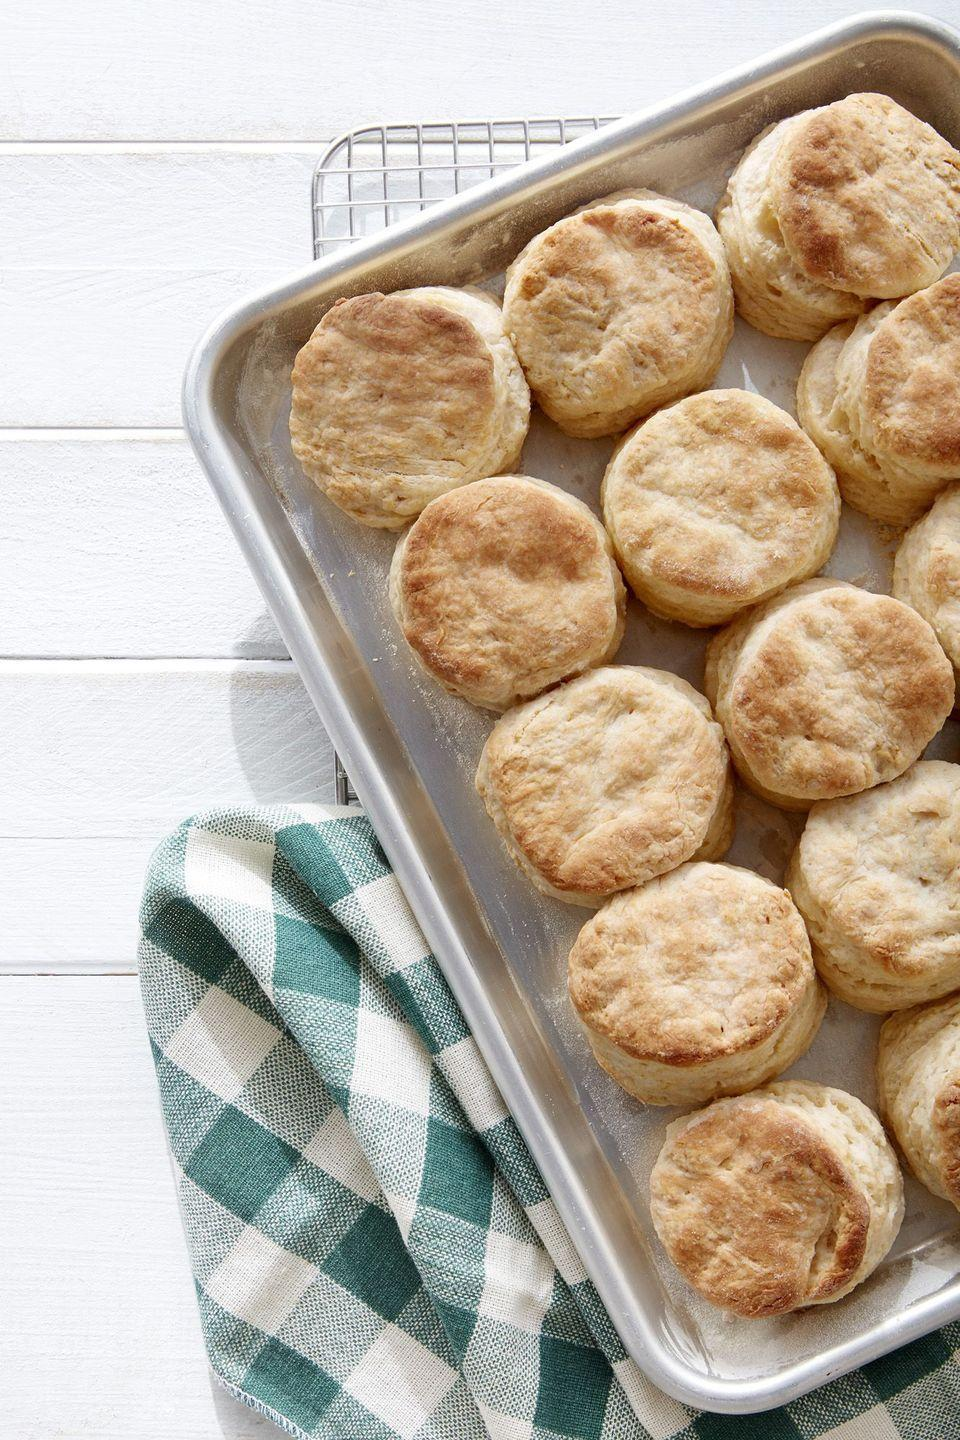 "<p>We suggest making a big batch of these scrumptious biscuits, so you can make sandwiches with your <a href=""https://www.countryliving.com/food-drinks/g1064/thanksgiving-leftovers/"" rel=""nofollow noopener"" target=""_blank"" data-ylk=""slk:Thanksgiving leftovers"" class=""link rapid-noclick-resp"">Thanksgiving leftovers</a>.</p><p><strong><a href=""https://www.countryliving.com/food-drinks/a19040029/mile-high-flaky-biscuits-recipe/"" rel=""nofollow noopener"" target=""_blank"" data-ylk=""slk:Get the recipe"" class=""link rapid-noclick-resp"">Get the recipe</a>.</strong></p><p><strong><a class=""link rapid-noclick-resp"" href=""https://www.amazon.com/Biscuit-Cutter-HULISEN-Cookies-Professional/dp/B074W66D85?tag=syn-yahoo-20&ascsubtag=%5Bartid%7C10050.g.896%5Bsrc%7Cyahoo-us"" rel=""nofollow noopener"" target=""_blank"" data-ylk=""slk:SHOP BISCUIT CUTTERS"">SHOP BISCUIT CUTTERS</a><br></strong></p>"